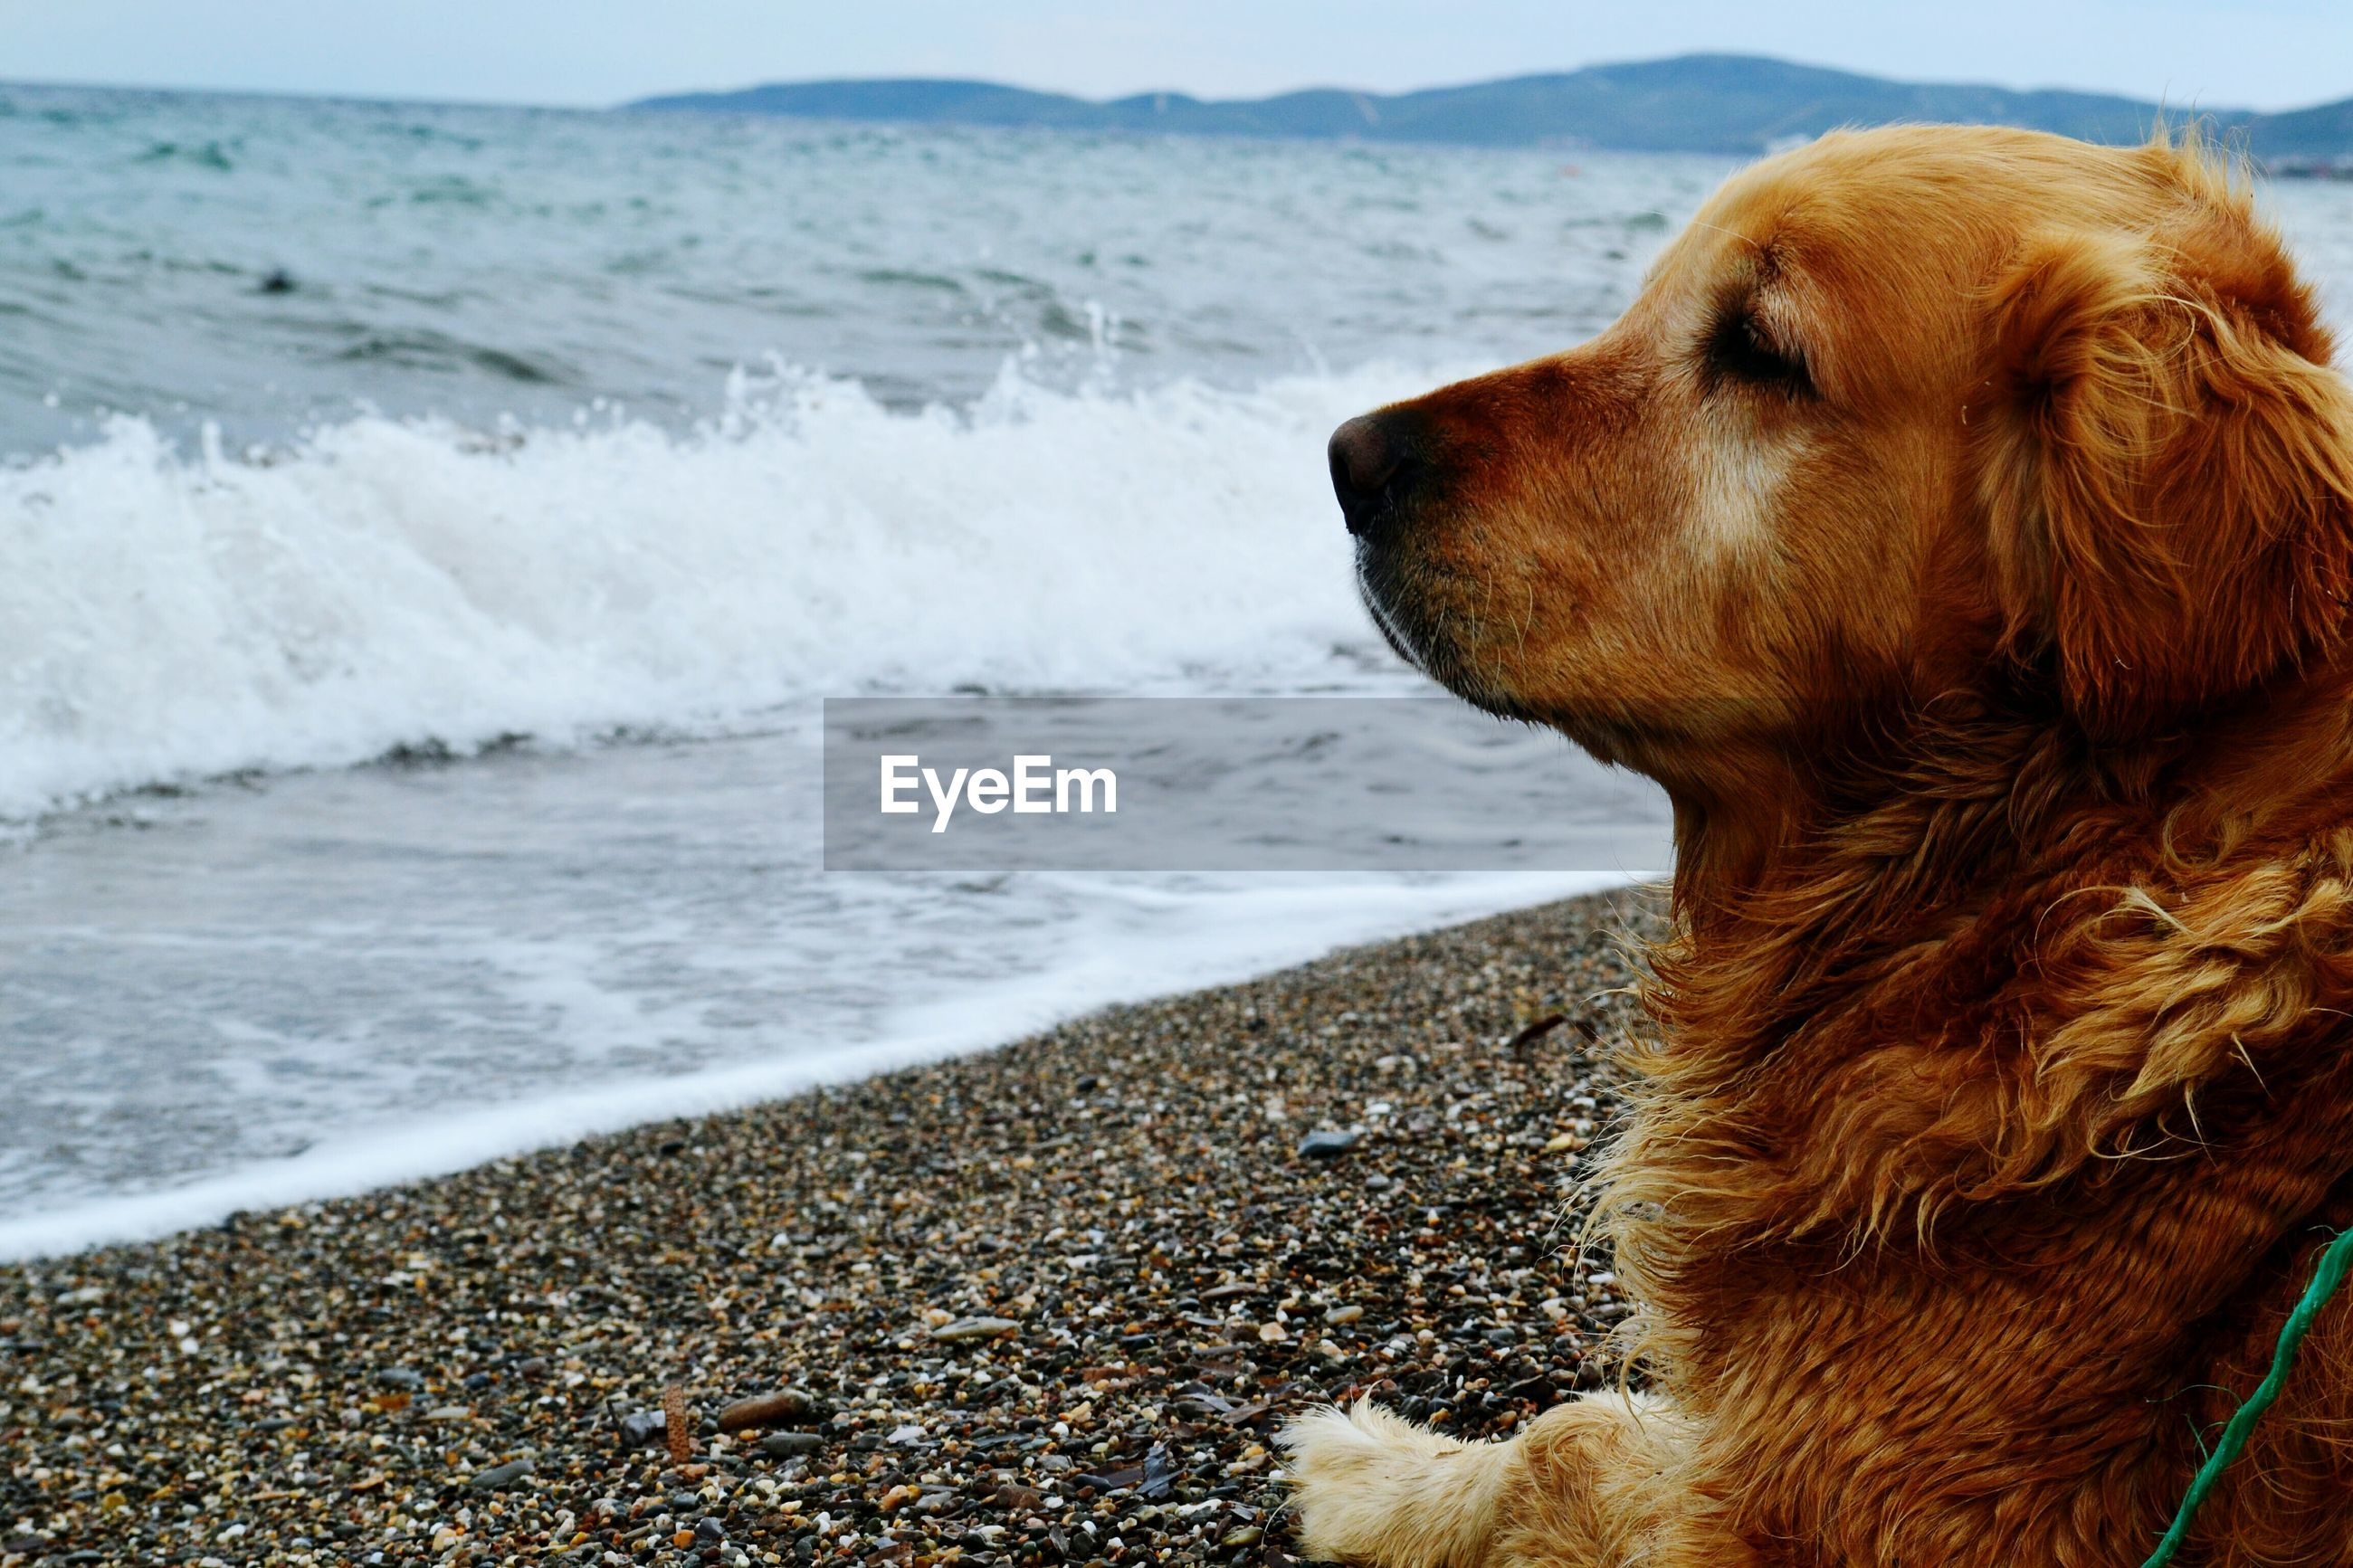 sea, water, beach, one animal, shore, animal themes, mammal, wave, nature, domestic animals, dog, pets, outdoors, sand, close-up, no people, horizon over water, beauty in nature, day, sky